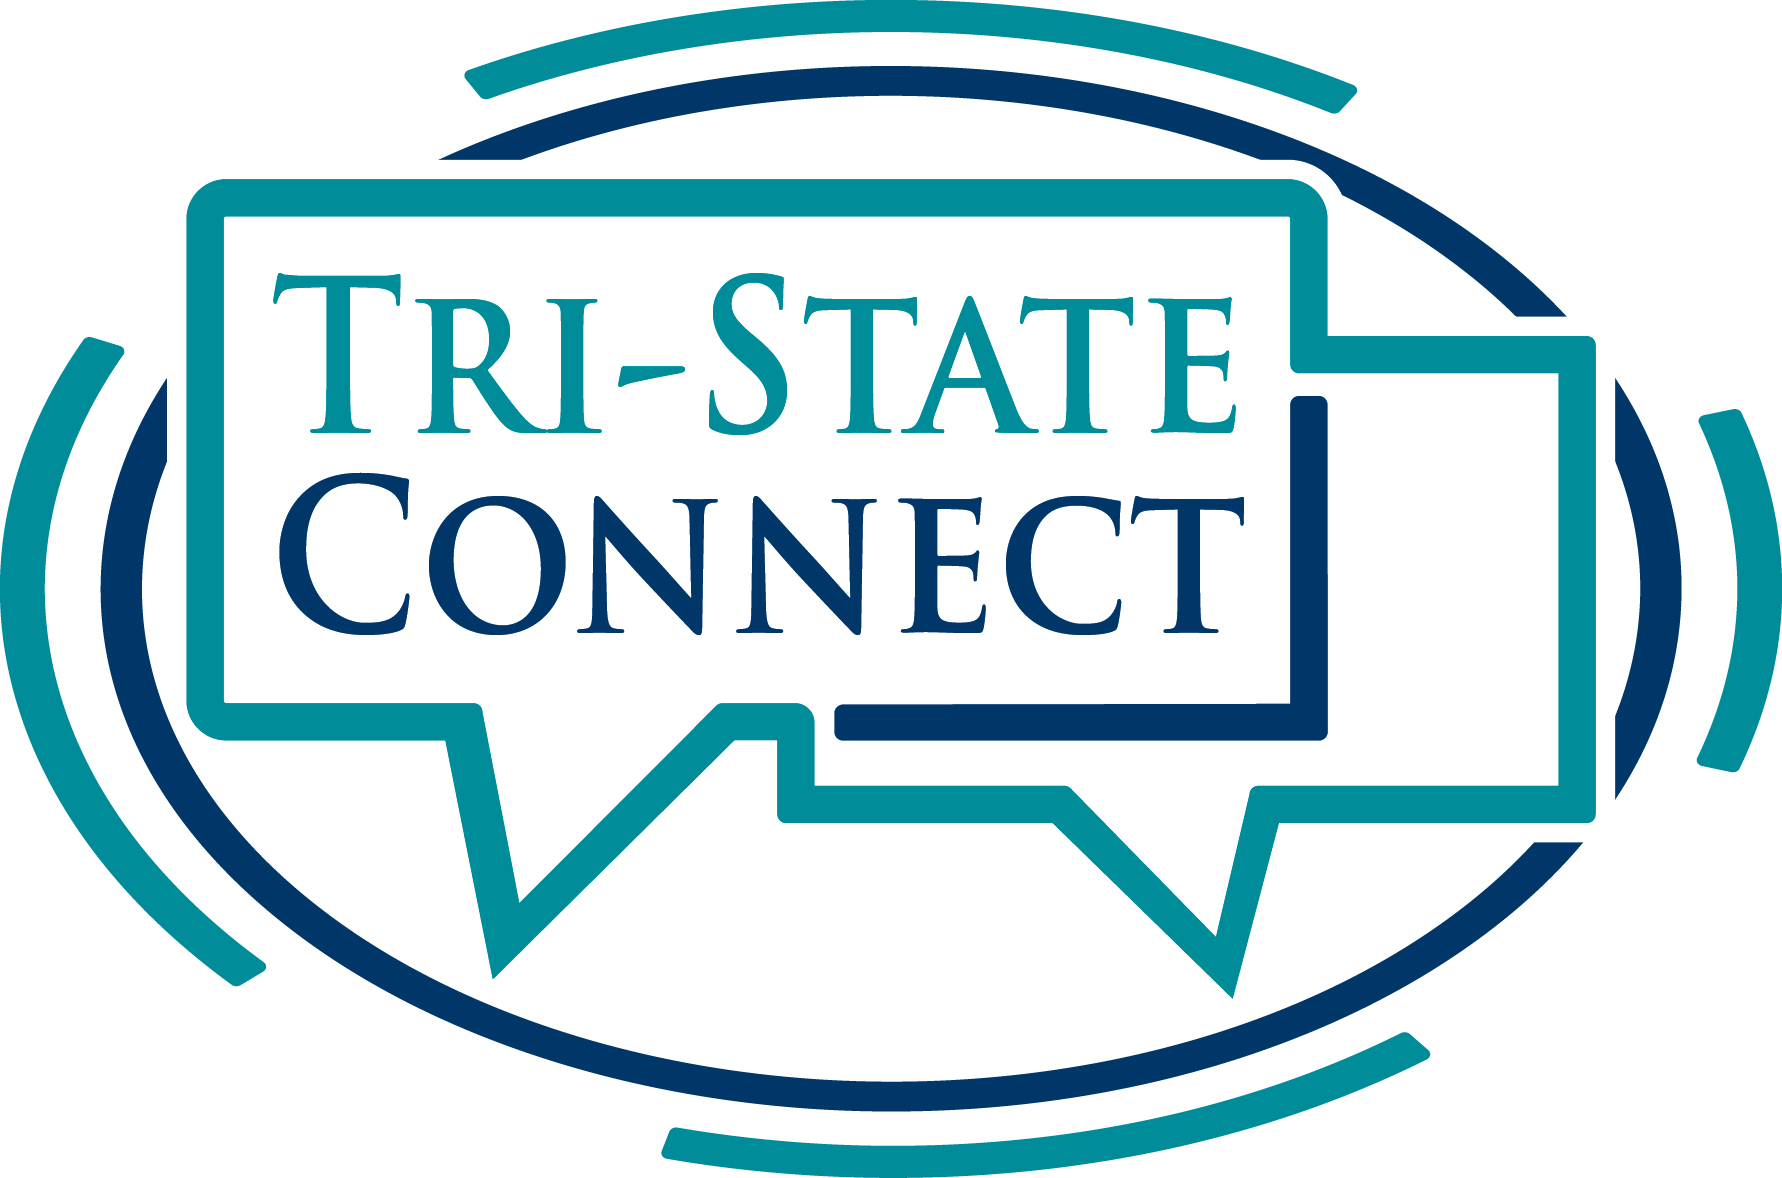 2017 Tri-State Connect logo